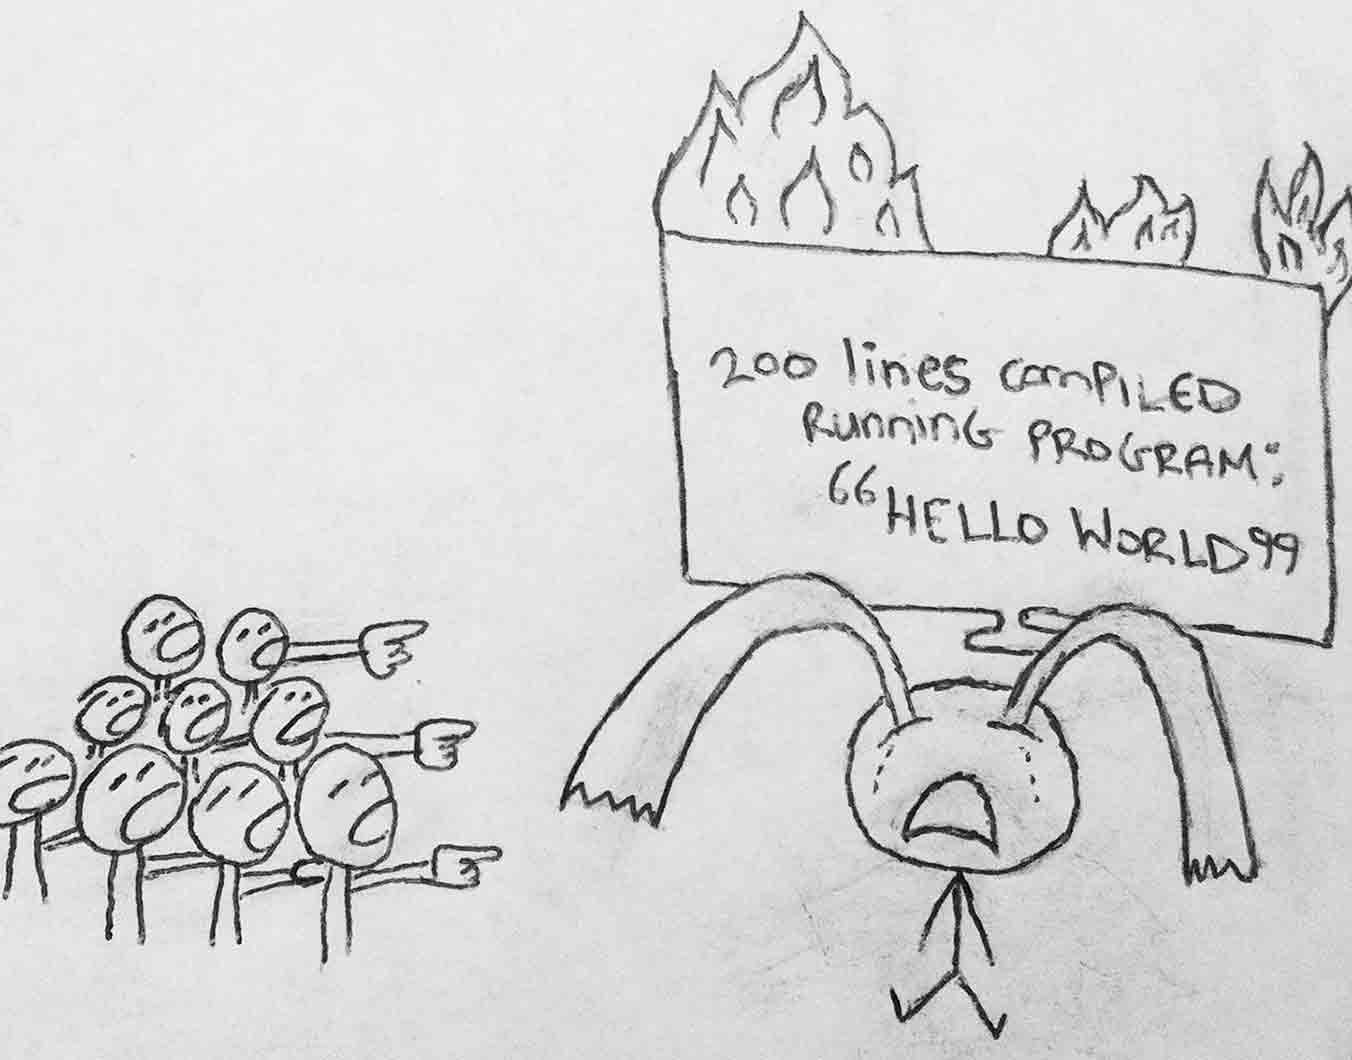 The second panel from this comic strip. Our hero cries while a crowd point and laugh as his hello world program goes up in flames behind him.